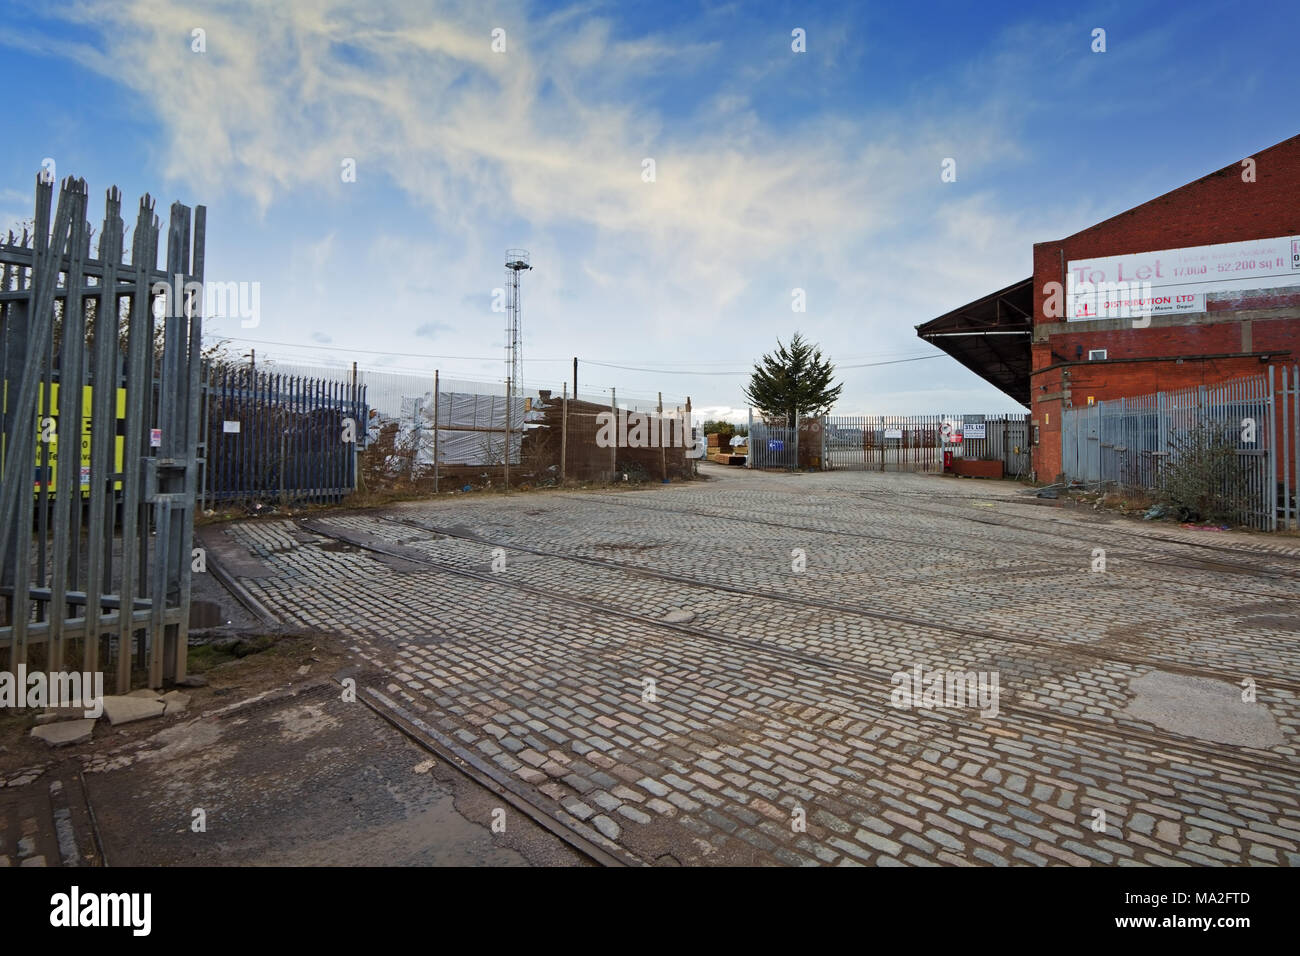 Bramley Moore Dock In Liverpool Where Everton Fc Plan To Build A New Stadium Stock Photo Alamy